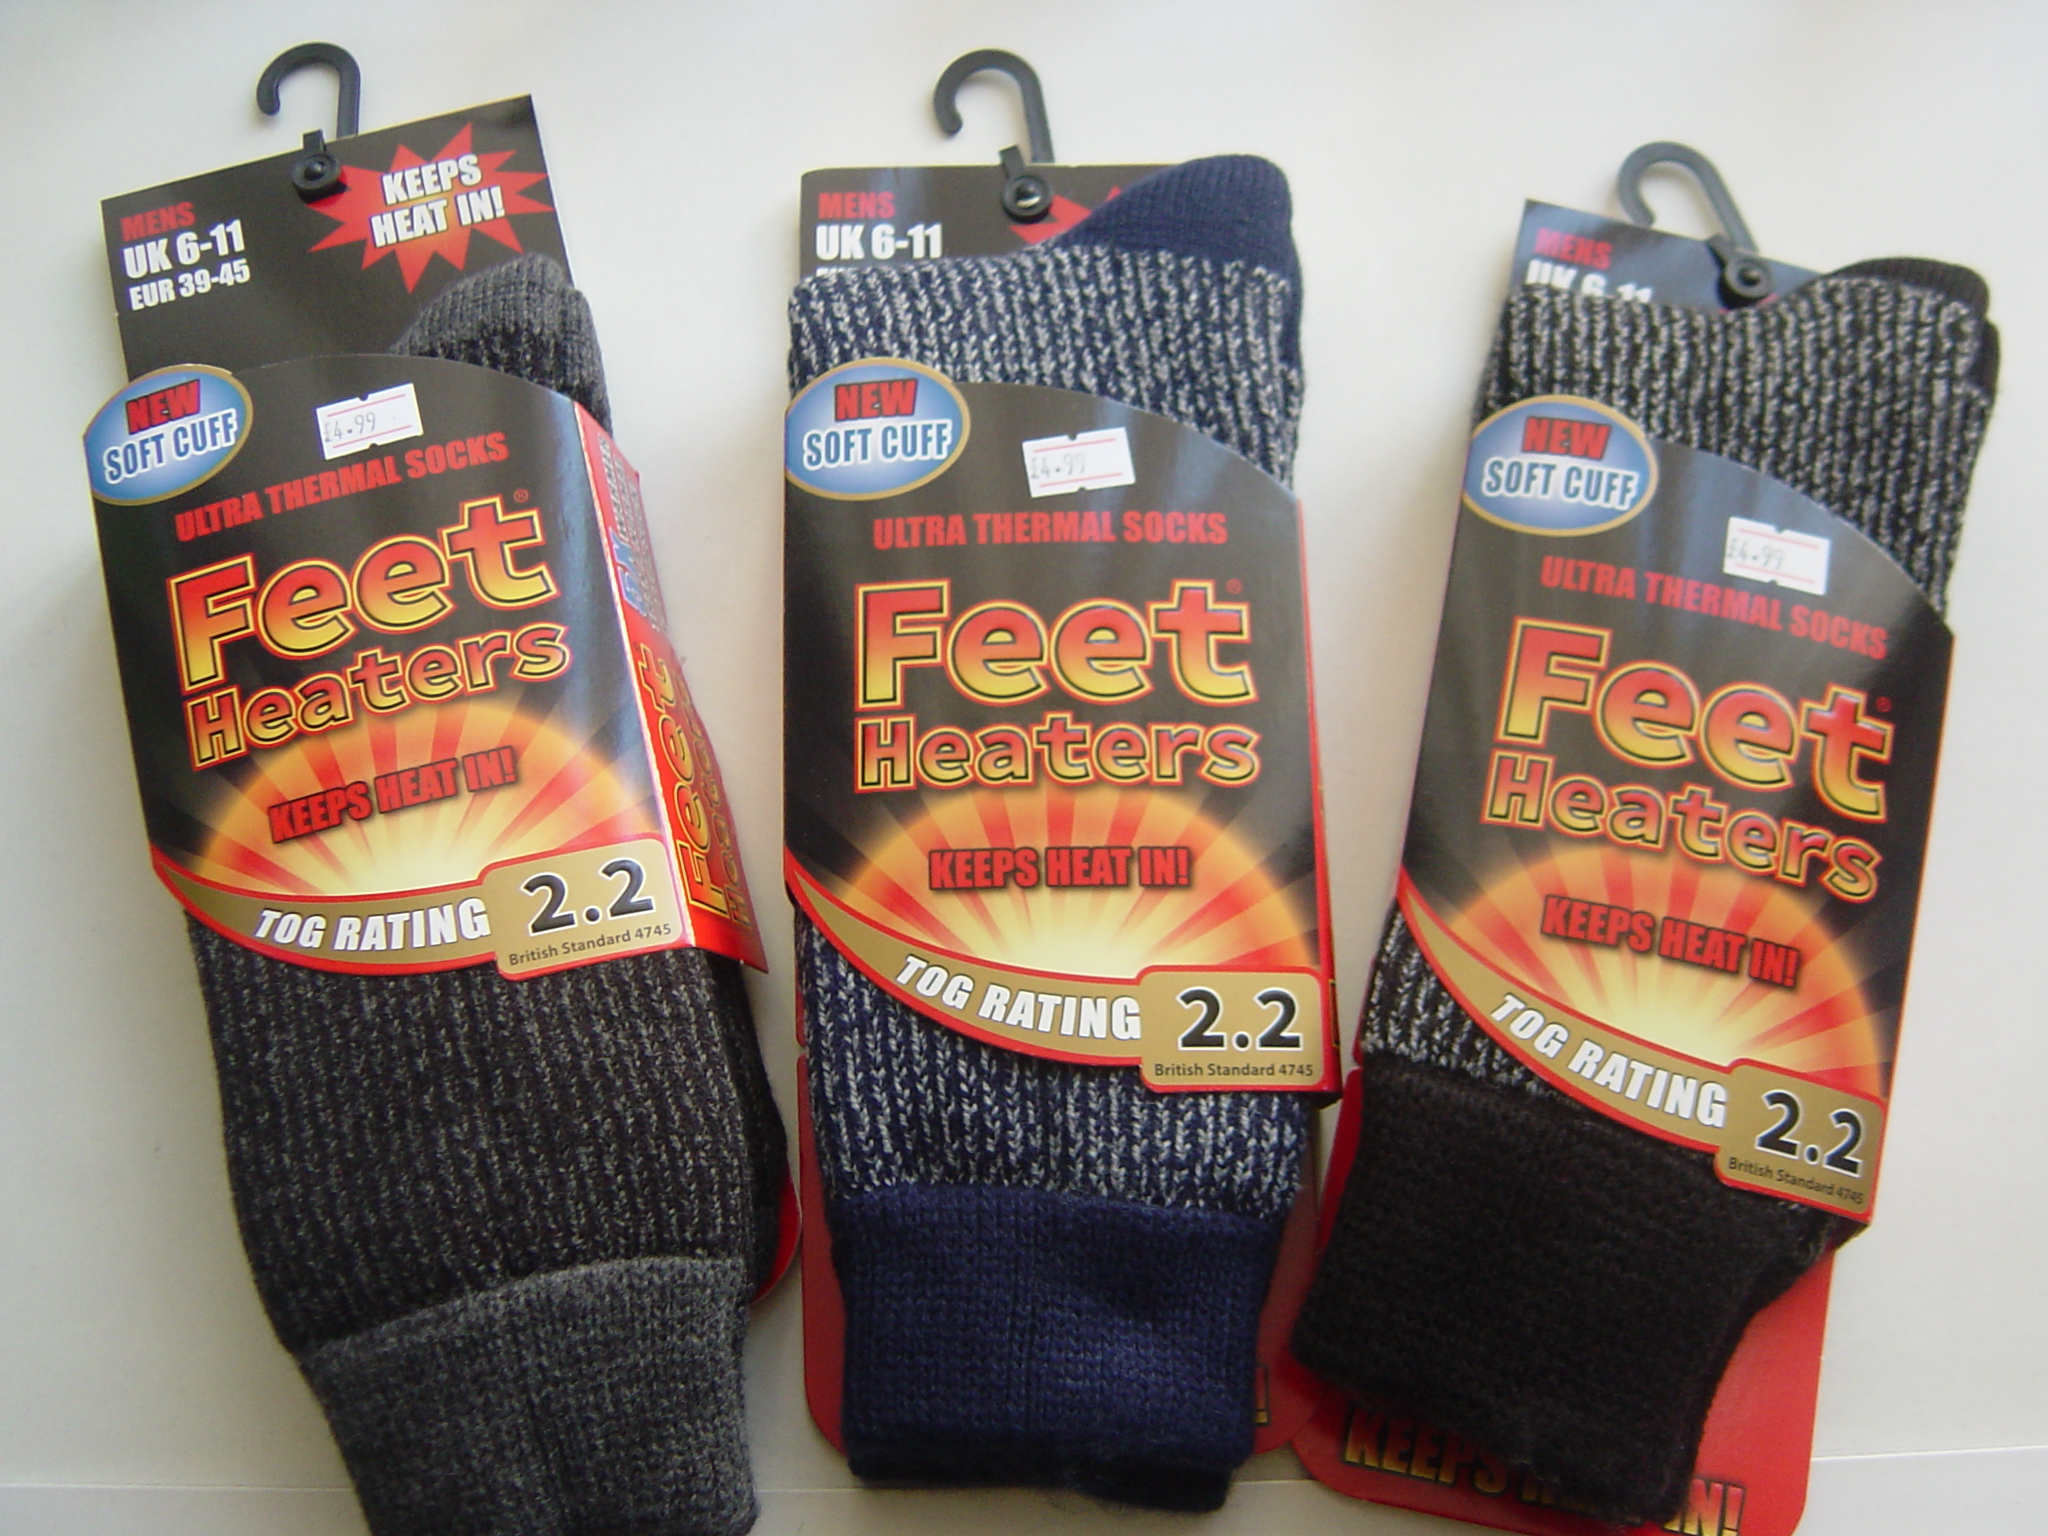 MENS THERMAL HEAT CONTROL SOCKS x 1 Pair